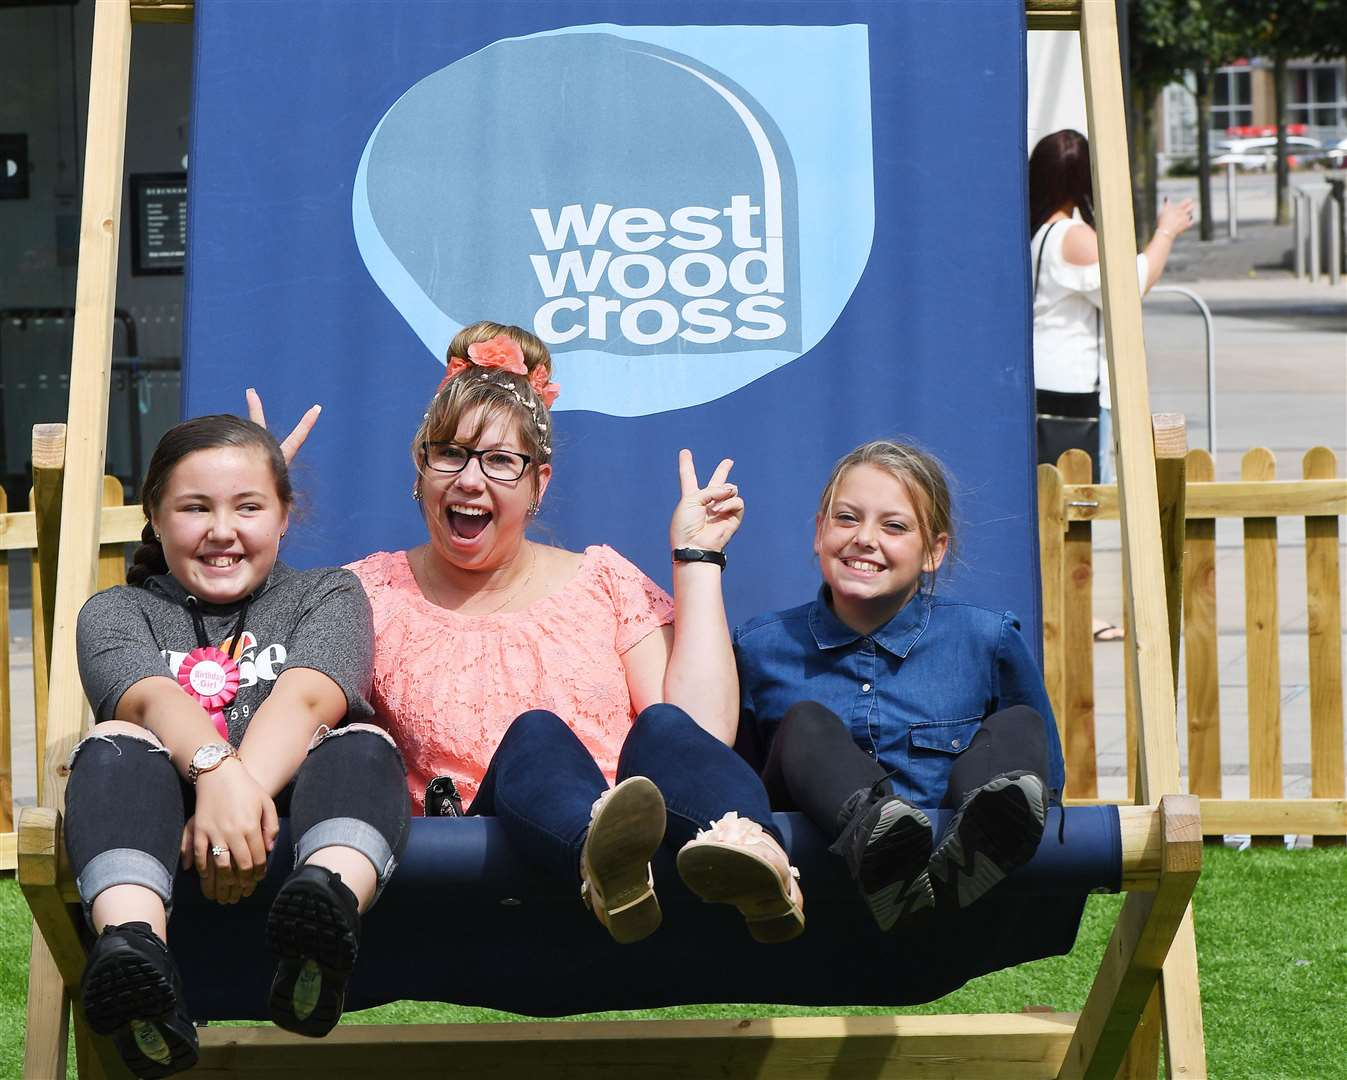 Family events at Westwood Cross until Monday